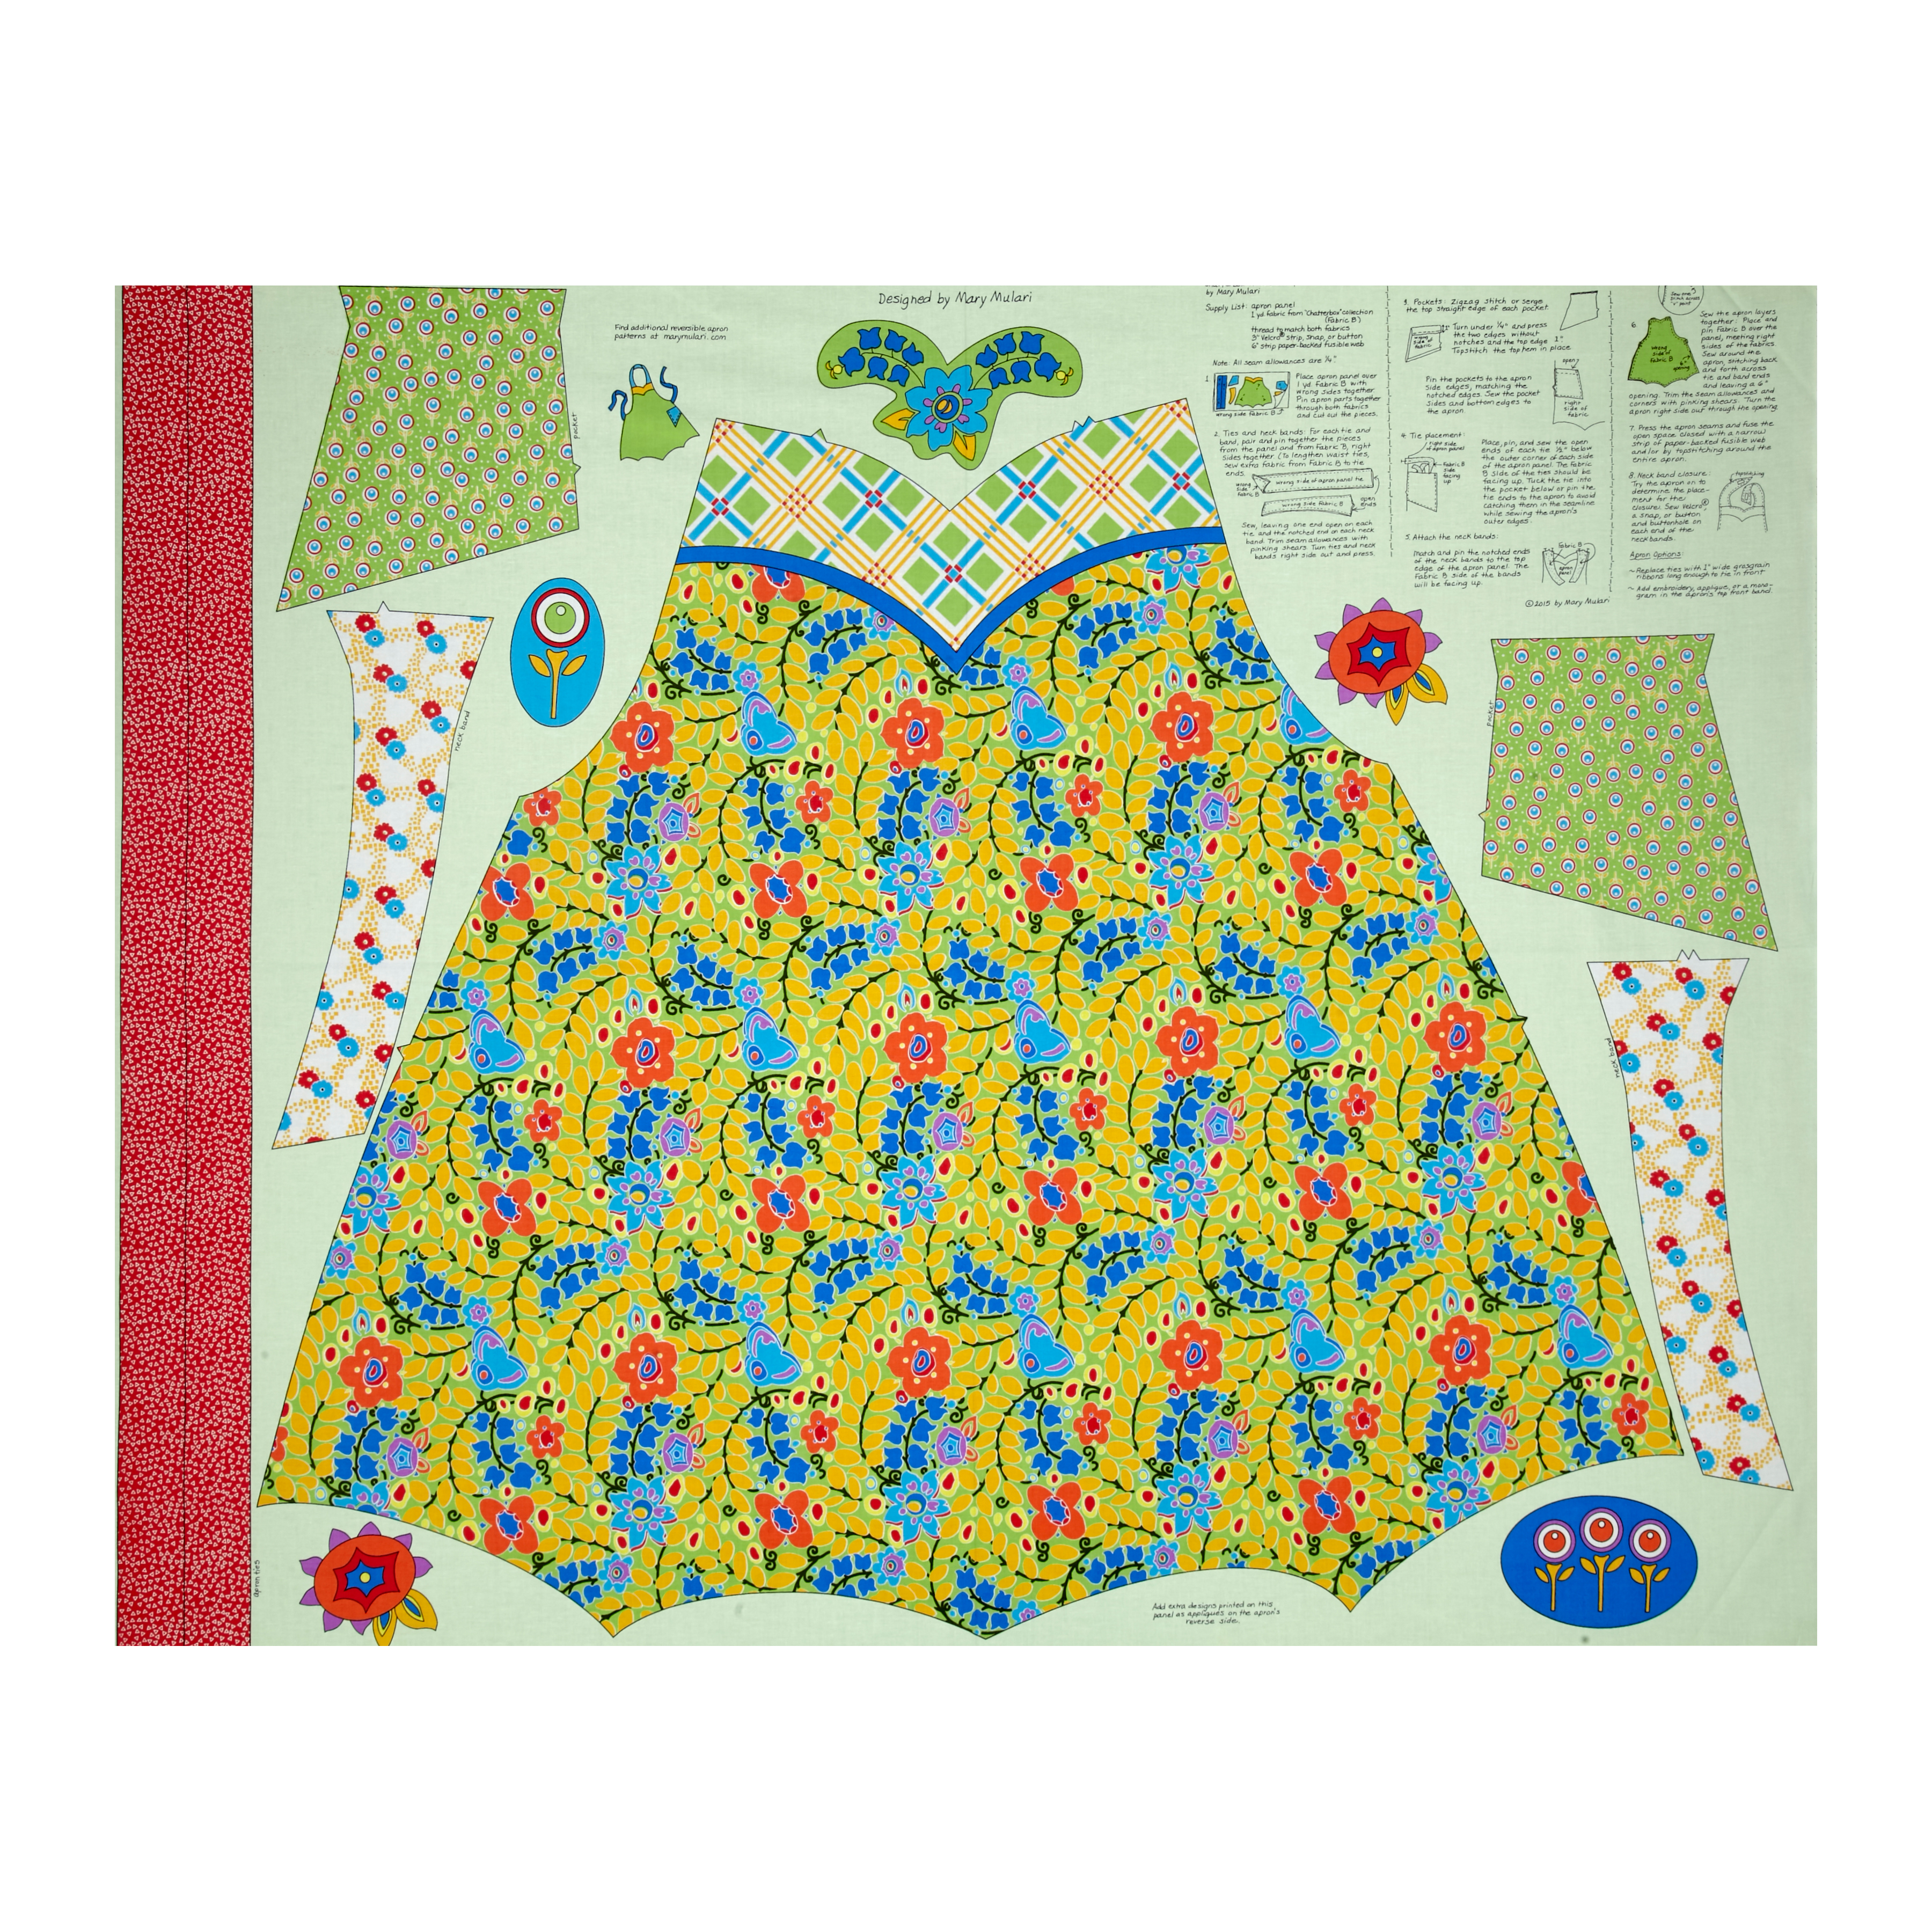 Penny Rose Chatterbox Aprons 36'' Panel Green Fabric by Christensen in USA